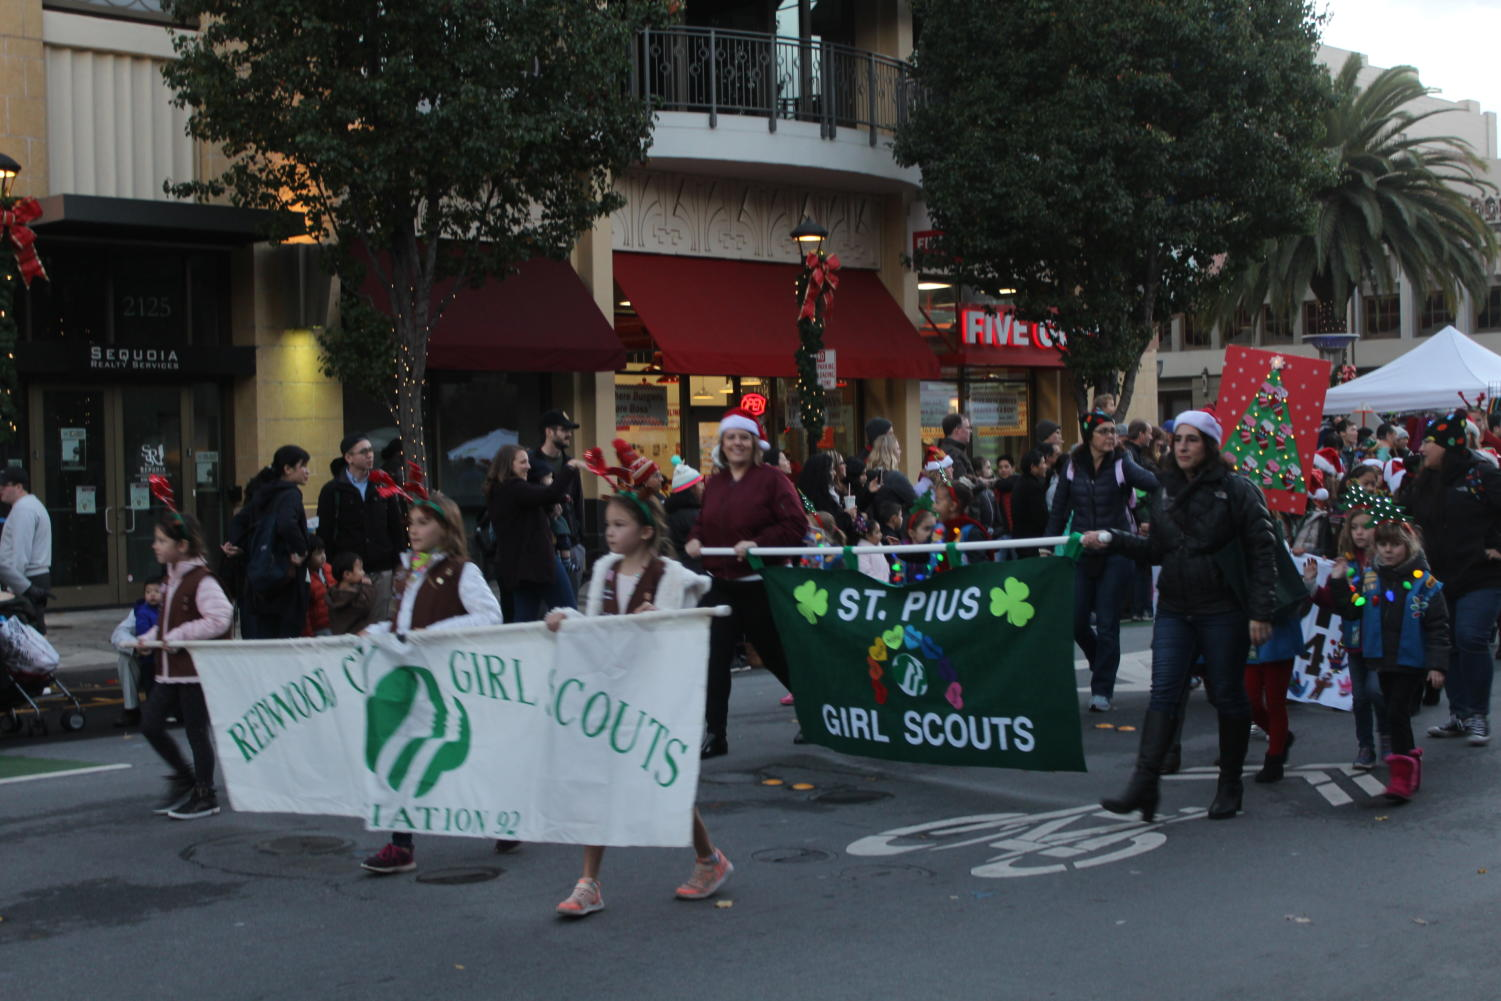 The+St.+Piu%27s+Girl+Scouts+walk+through+the+parade+carrying+banners.+Individual+troops+cycled+through+the+parade+later+on.